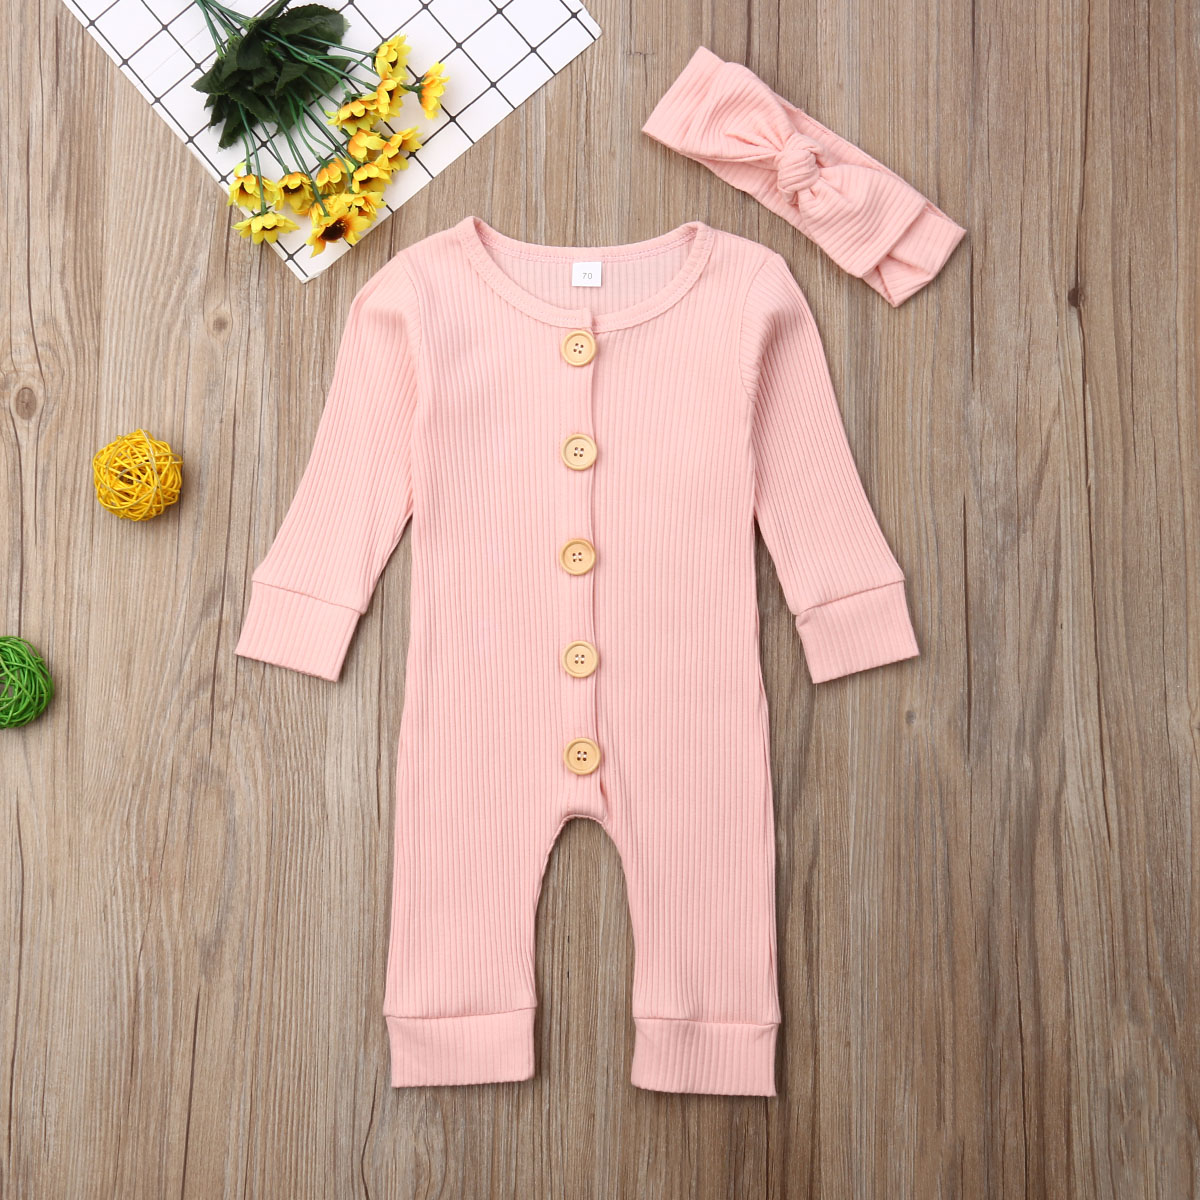 Spring Fall Newborn Baby Girl Boy Clothes Long Sleeve Knitted Romper + Headband Jumpsuit 2PCS Outfit 0-24M